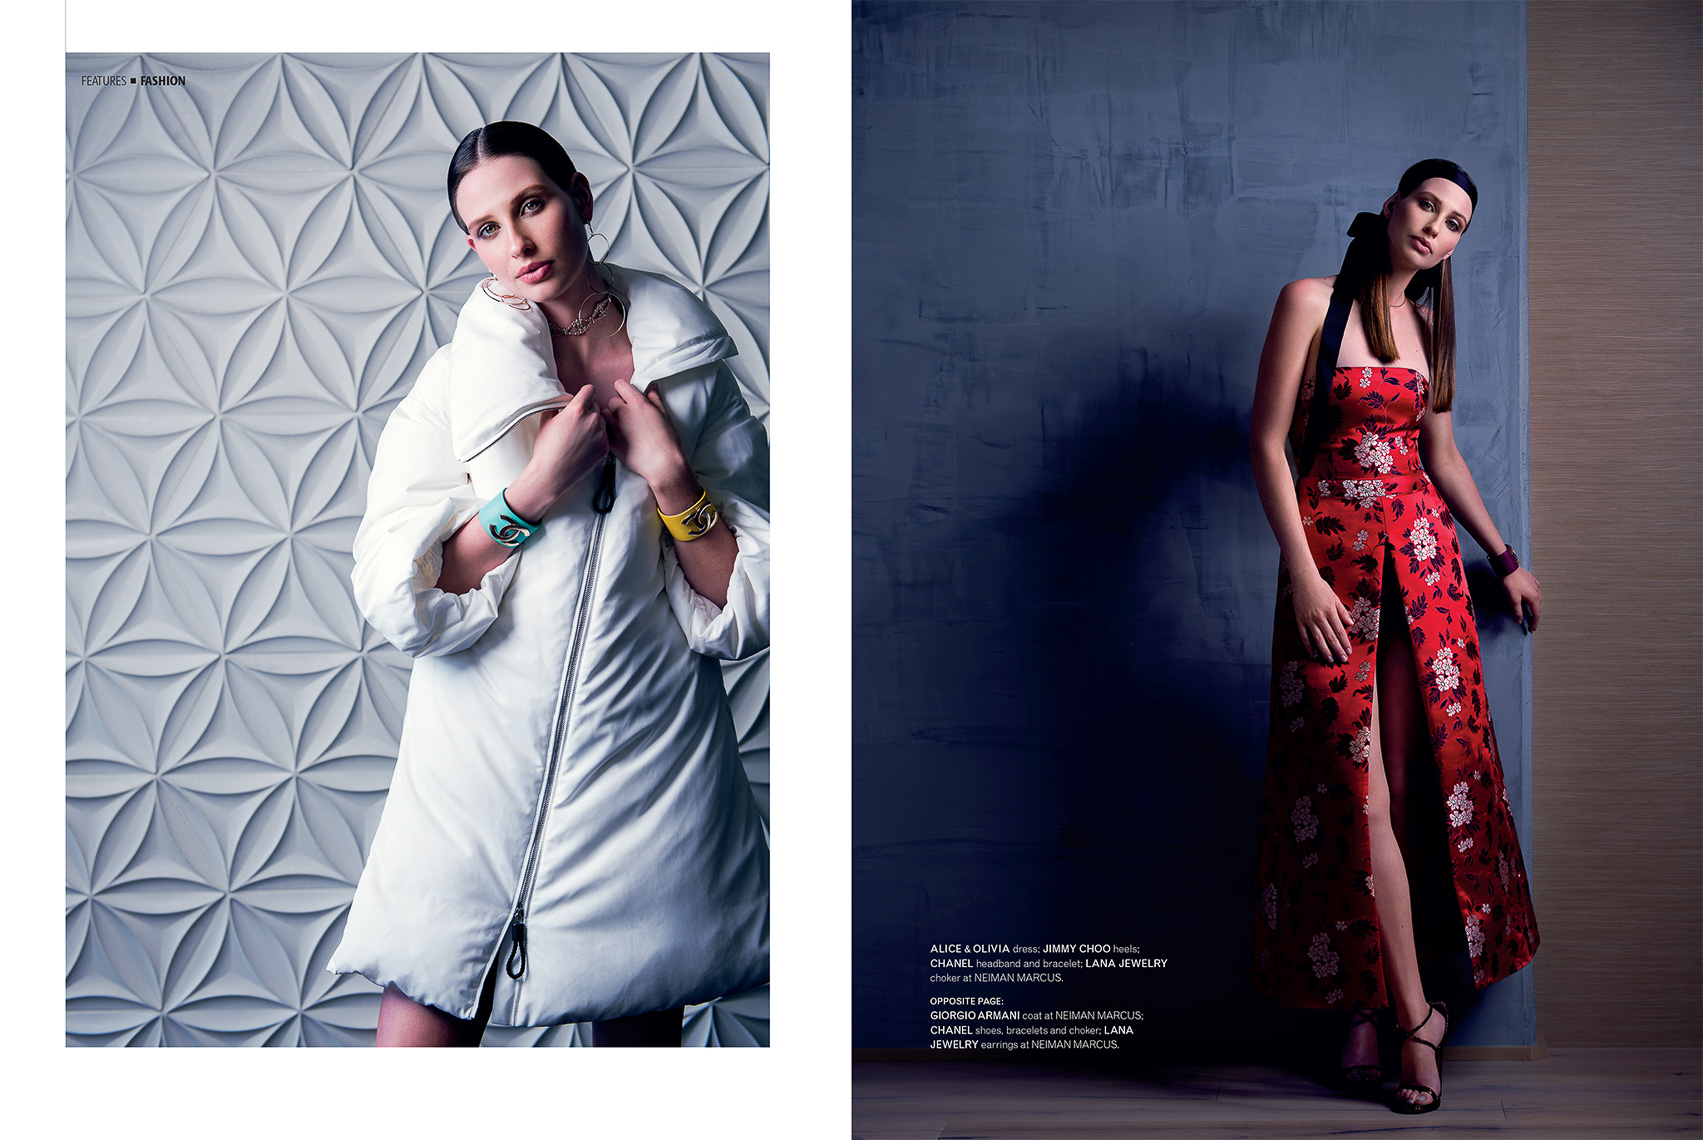 tommyshih-hiluxury-dec17jan18-fashion-p130-131-web